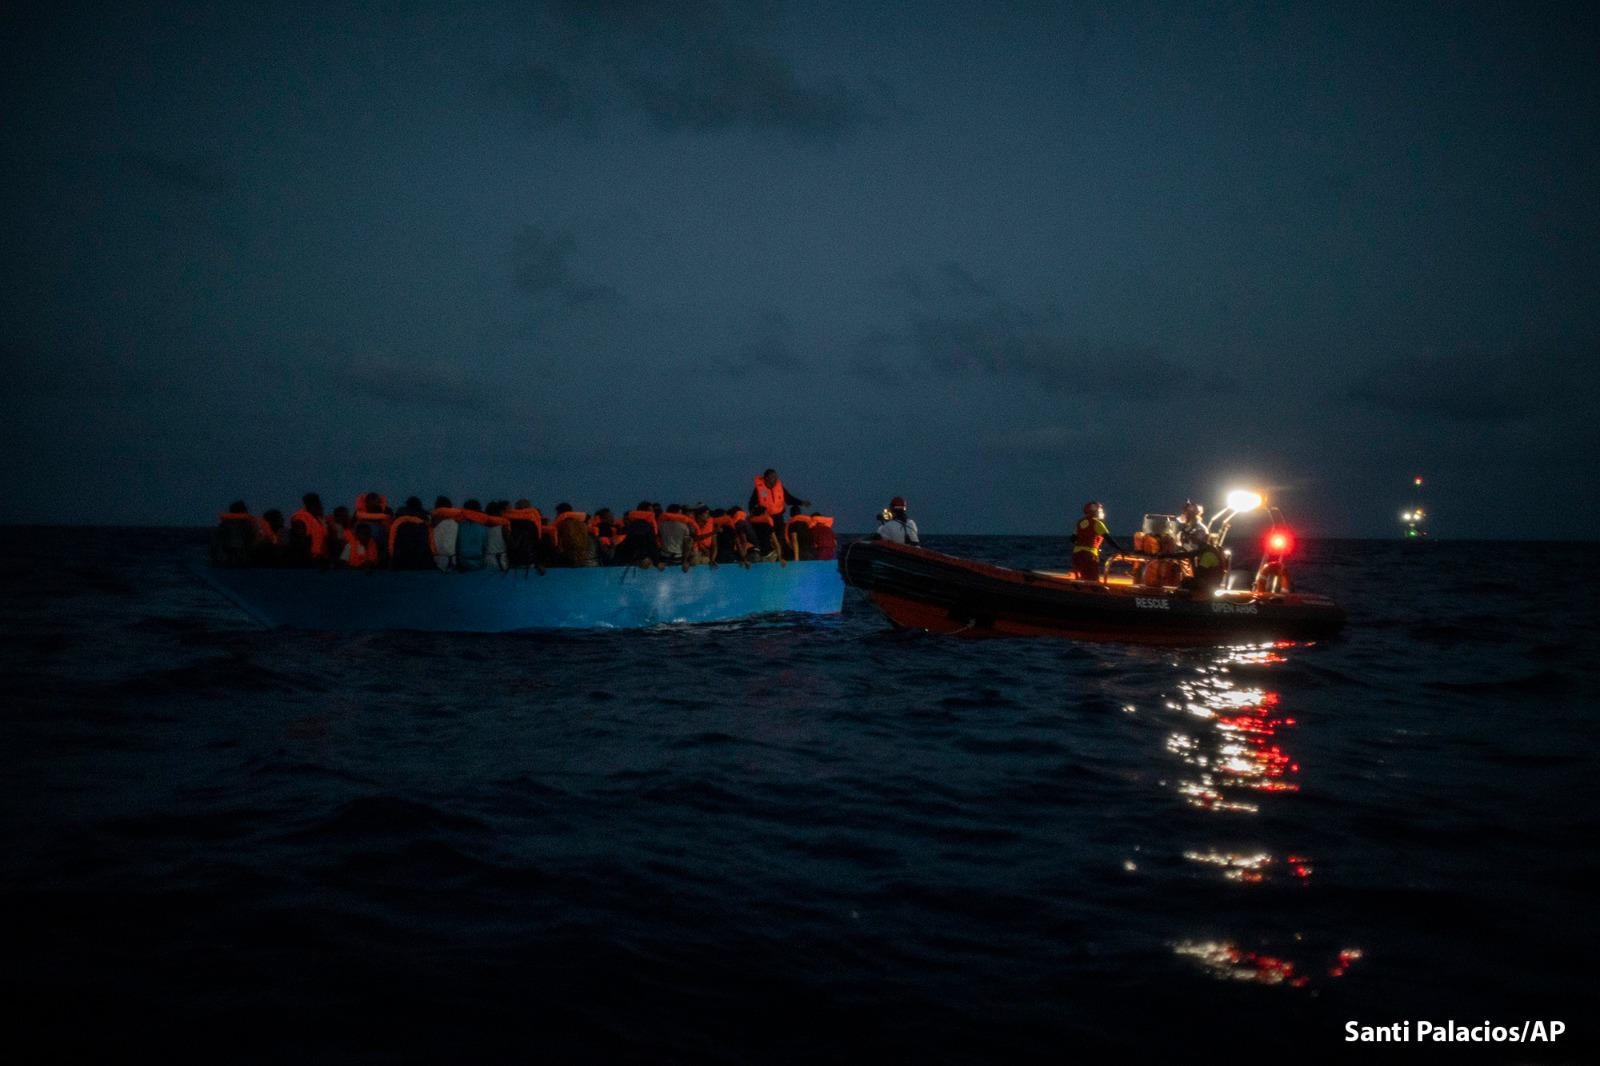 EMERGENCY And Open Arms Rescued 83 People In The Mediterranean Sea